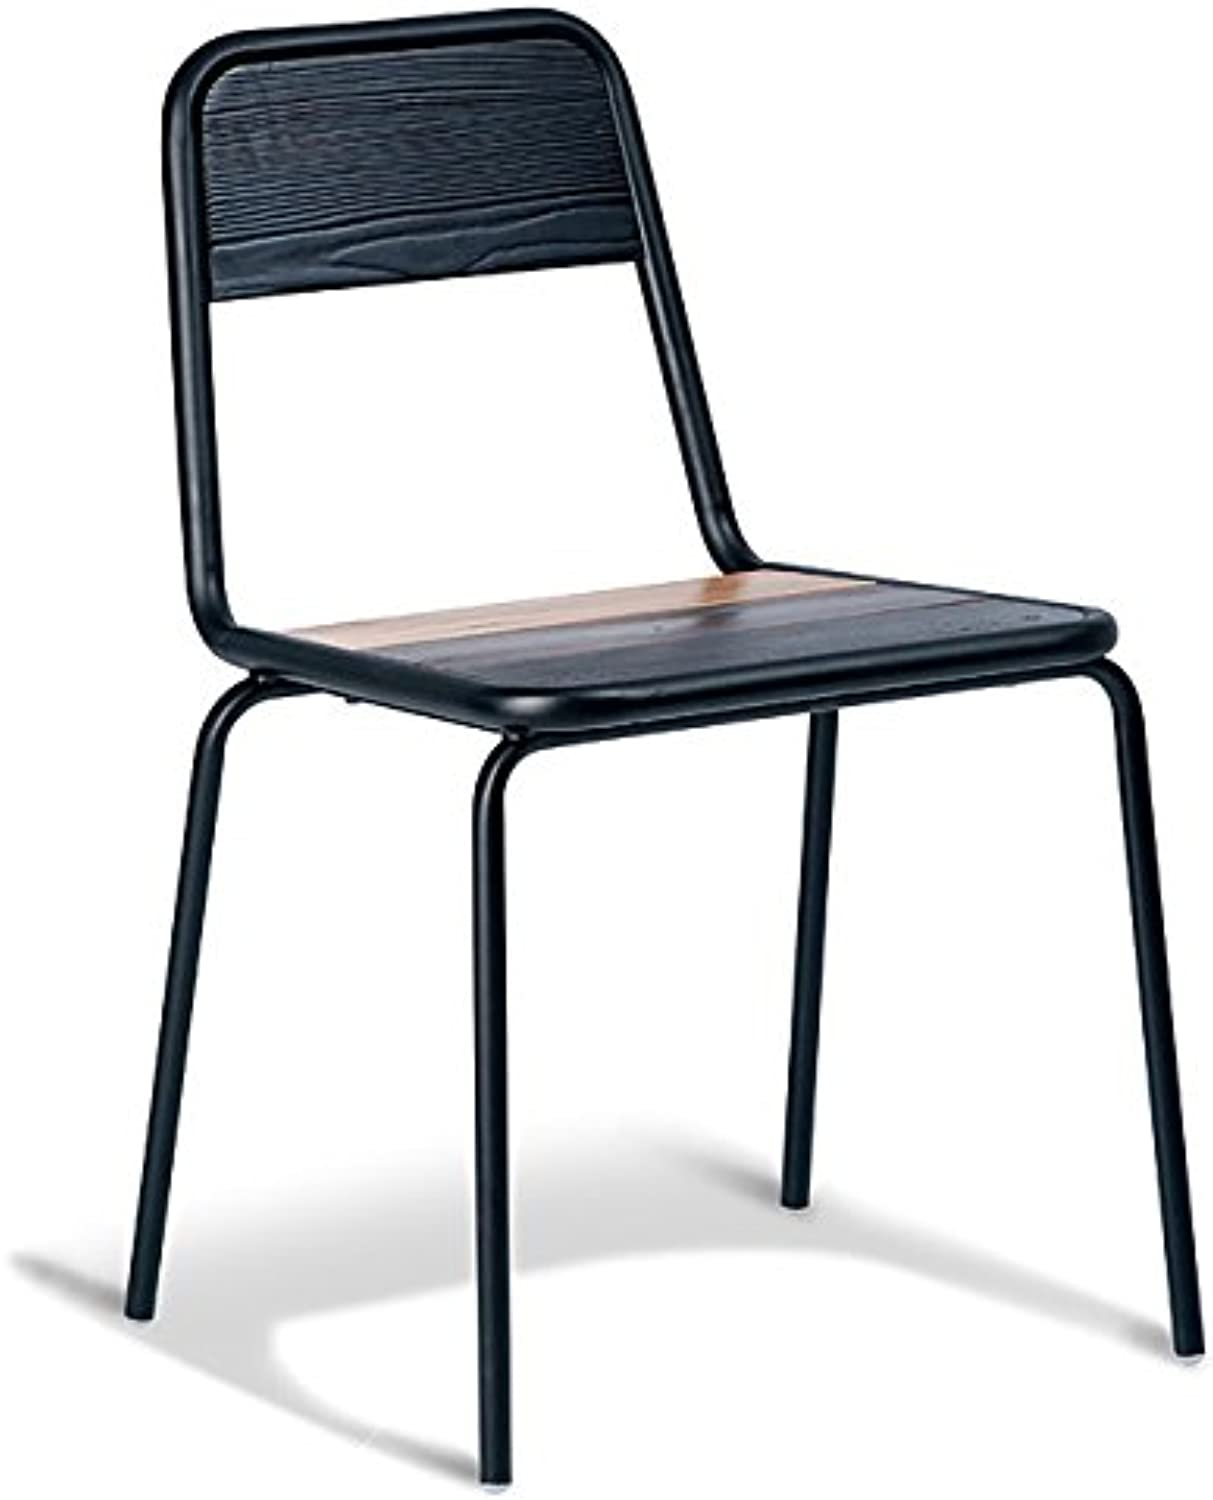 New Sam Industrial Flat Dining Chair - Black Frame - Brown Timber Seat